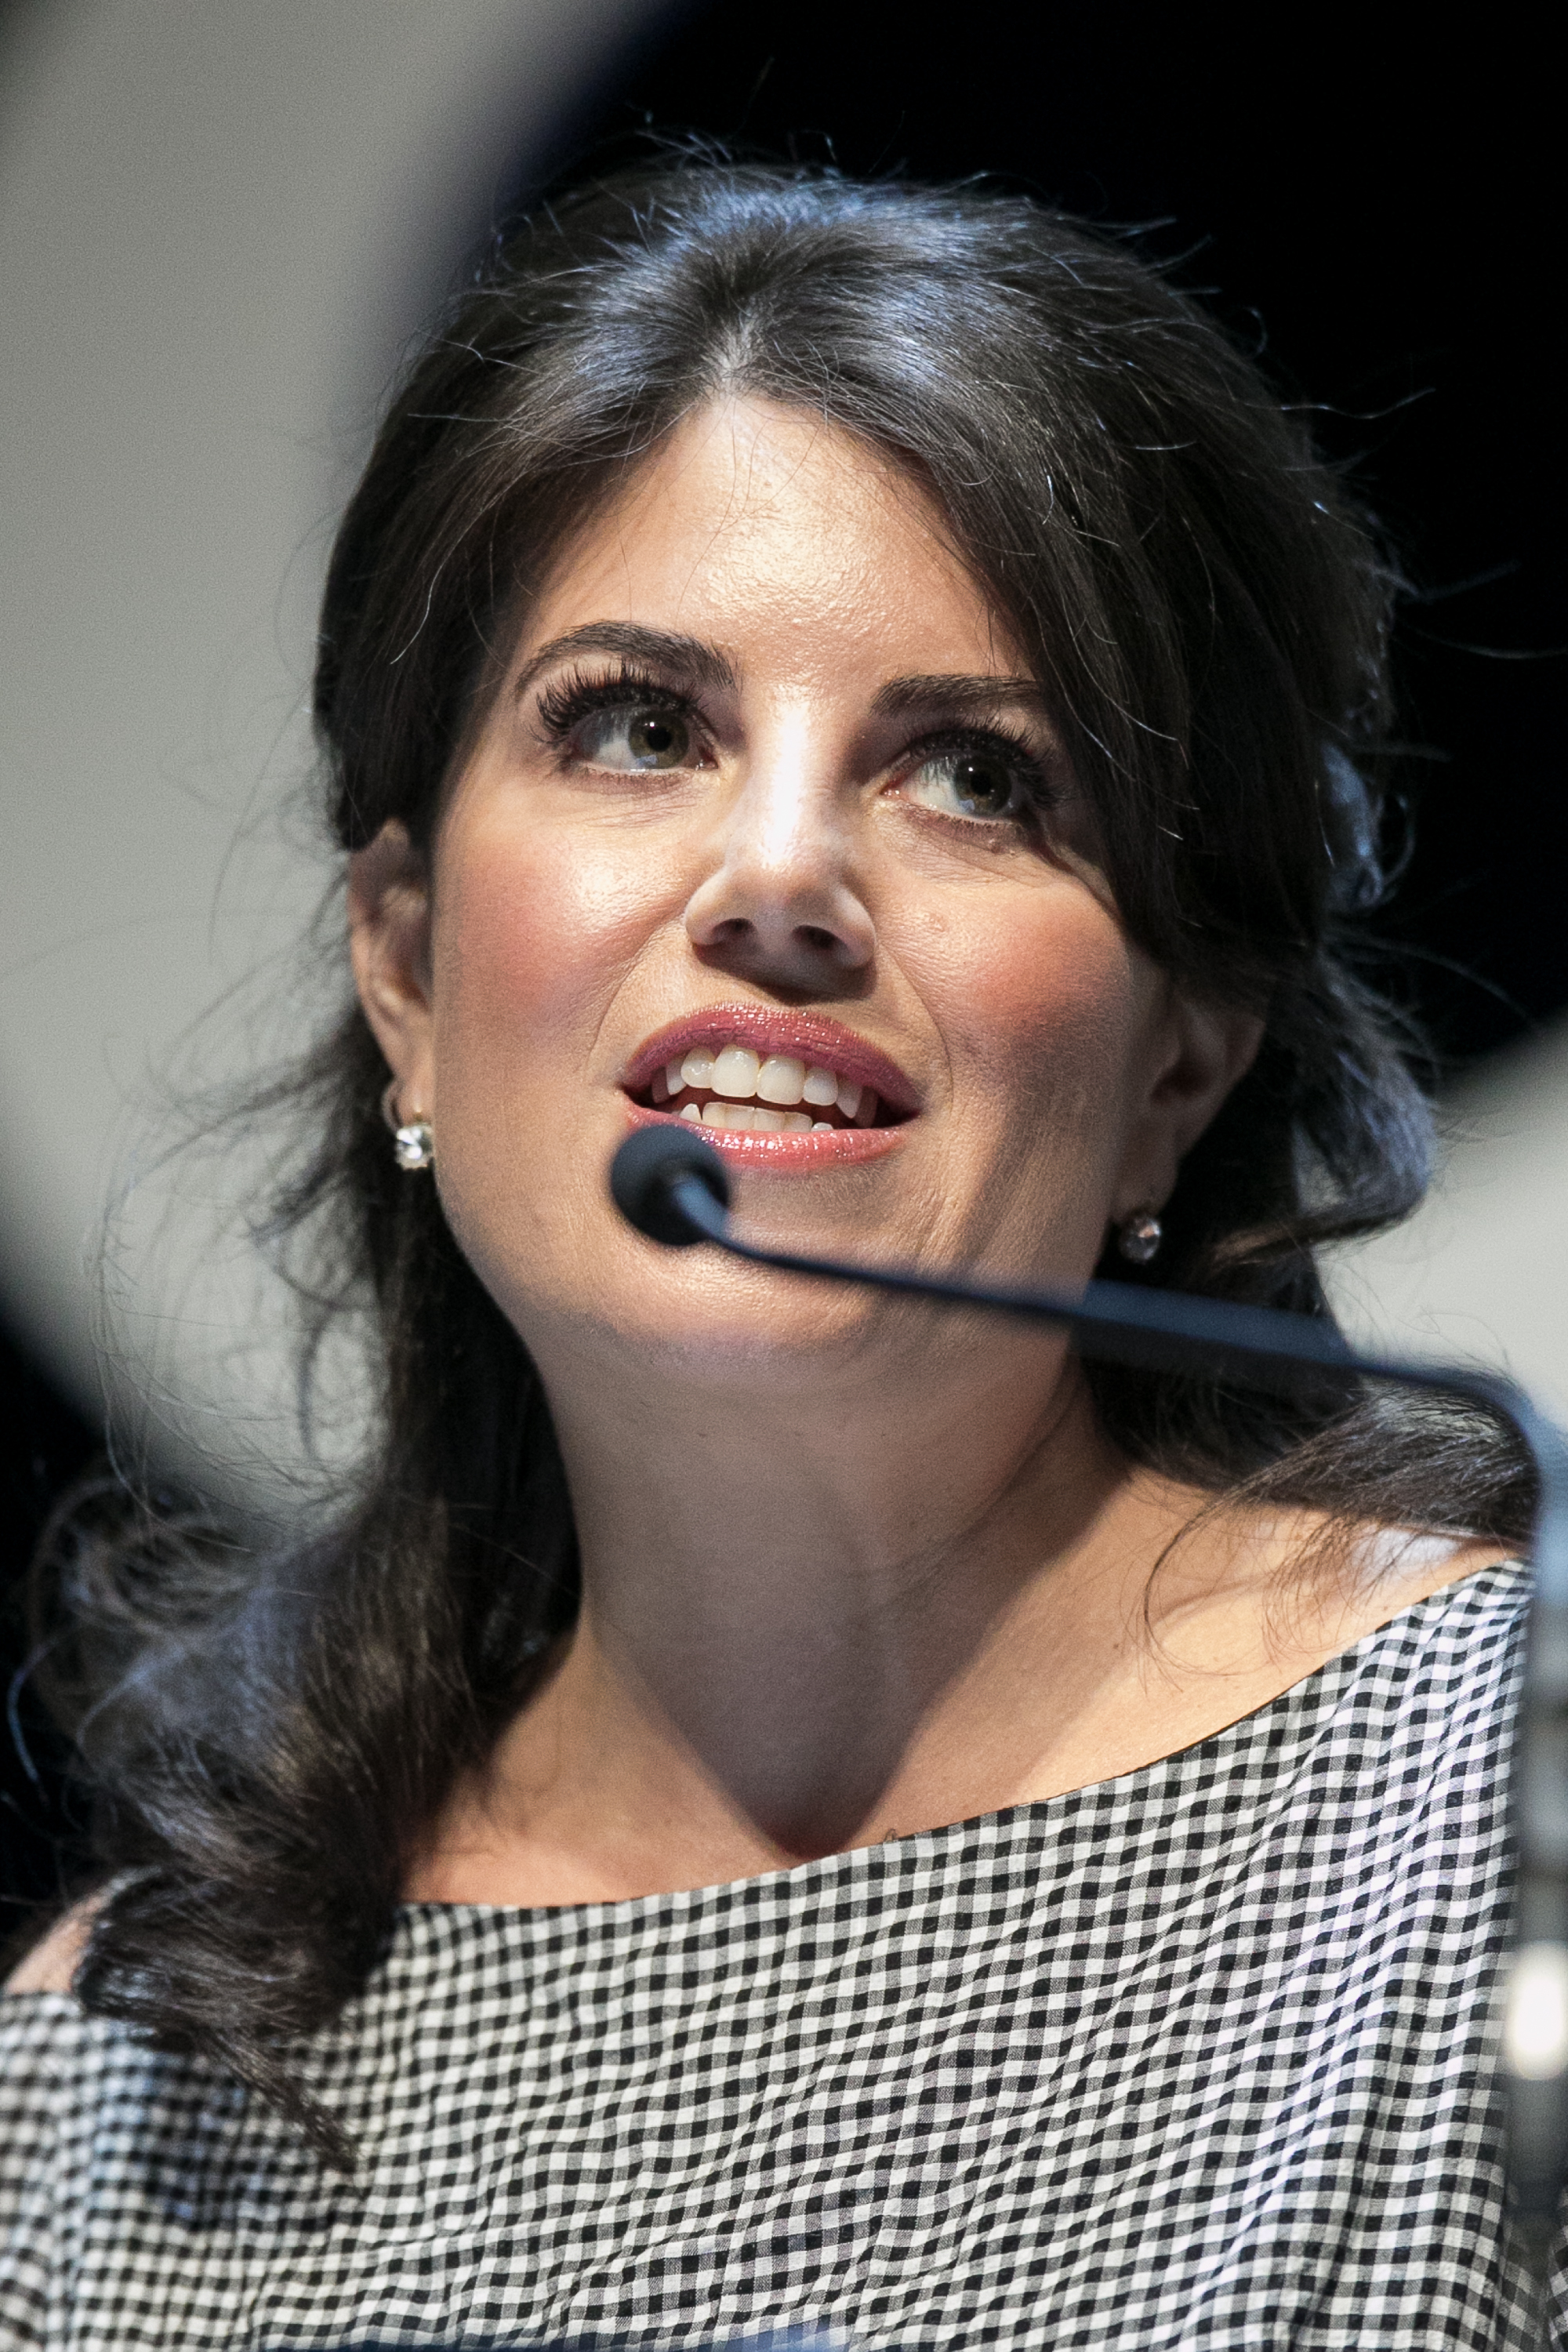 Monica Lewinsky attends the 'Cannes Lions Festival' on June 25, 2015 in Cannes, France.